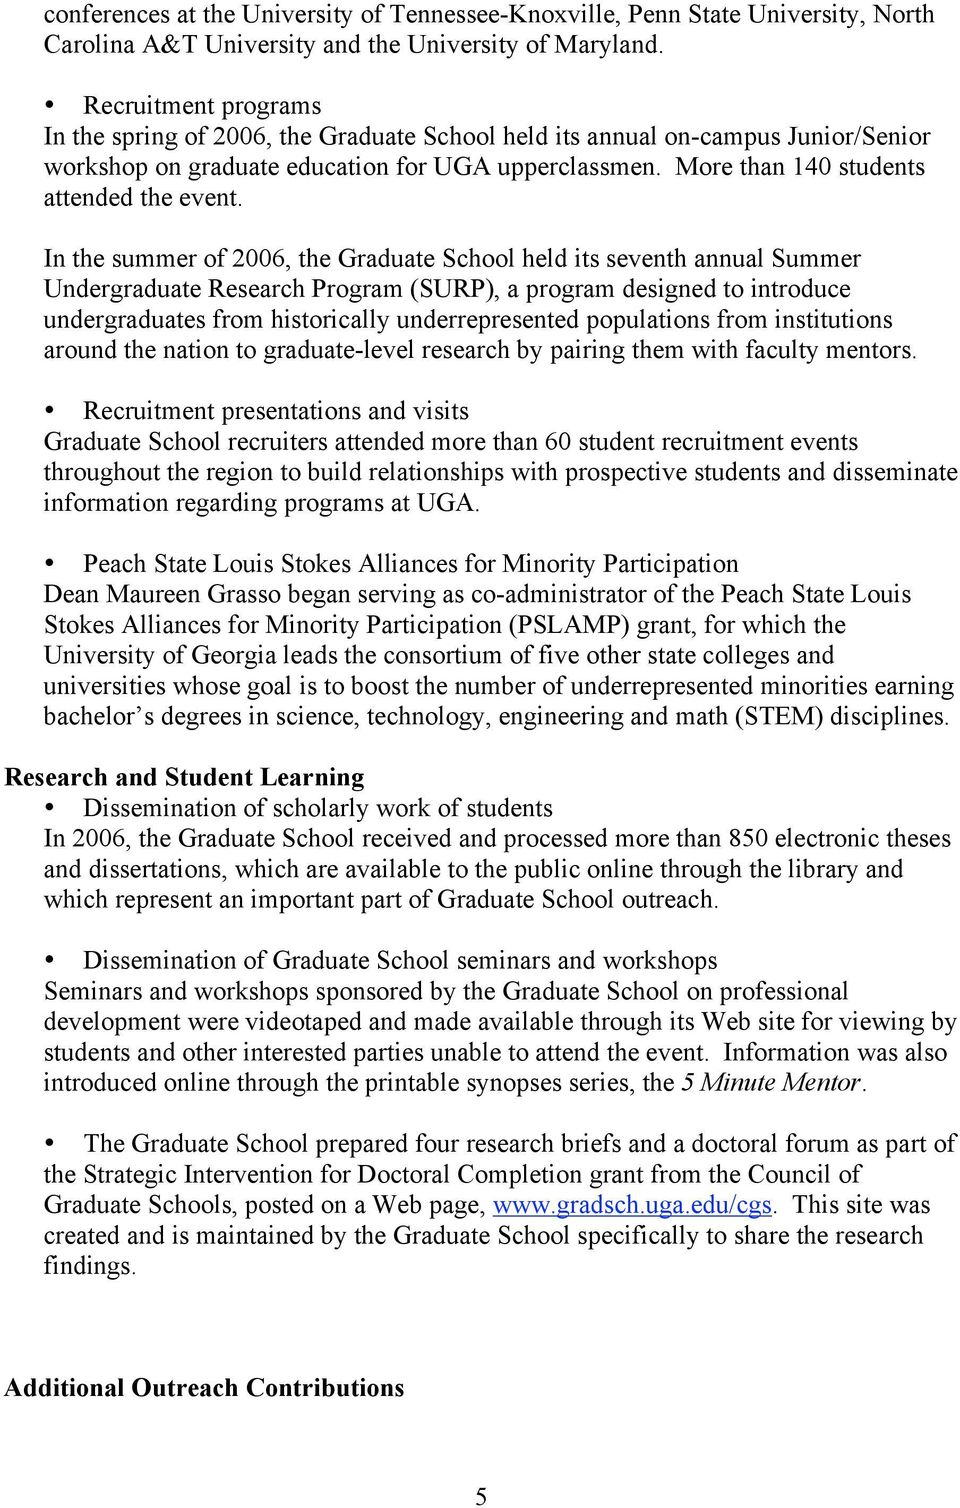 In the summer of 2006, the Graduate School held its seventh annual Summer Undergraduate Research Program (SURP), a program designed to introduce undergraduates from historically underrepresented